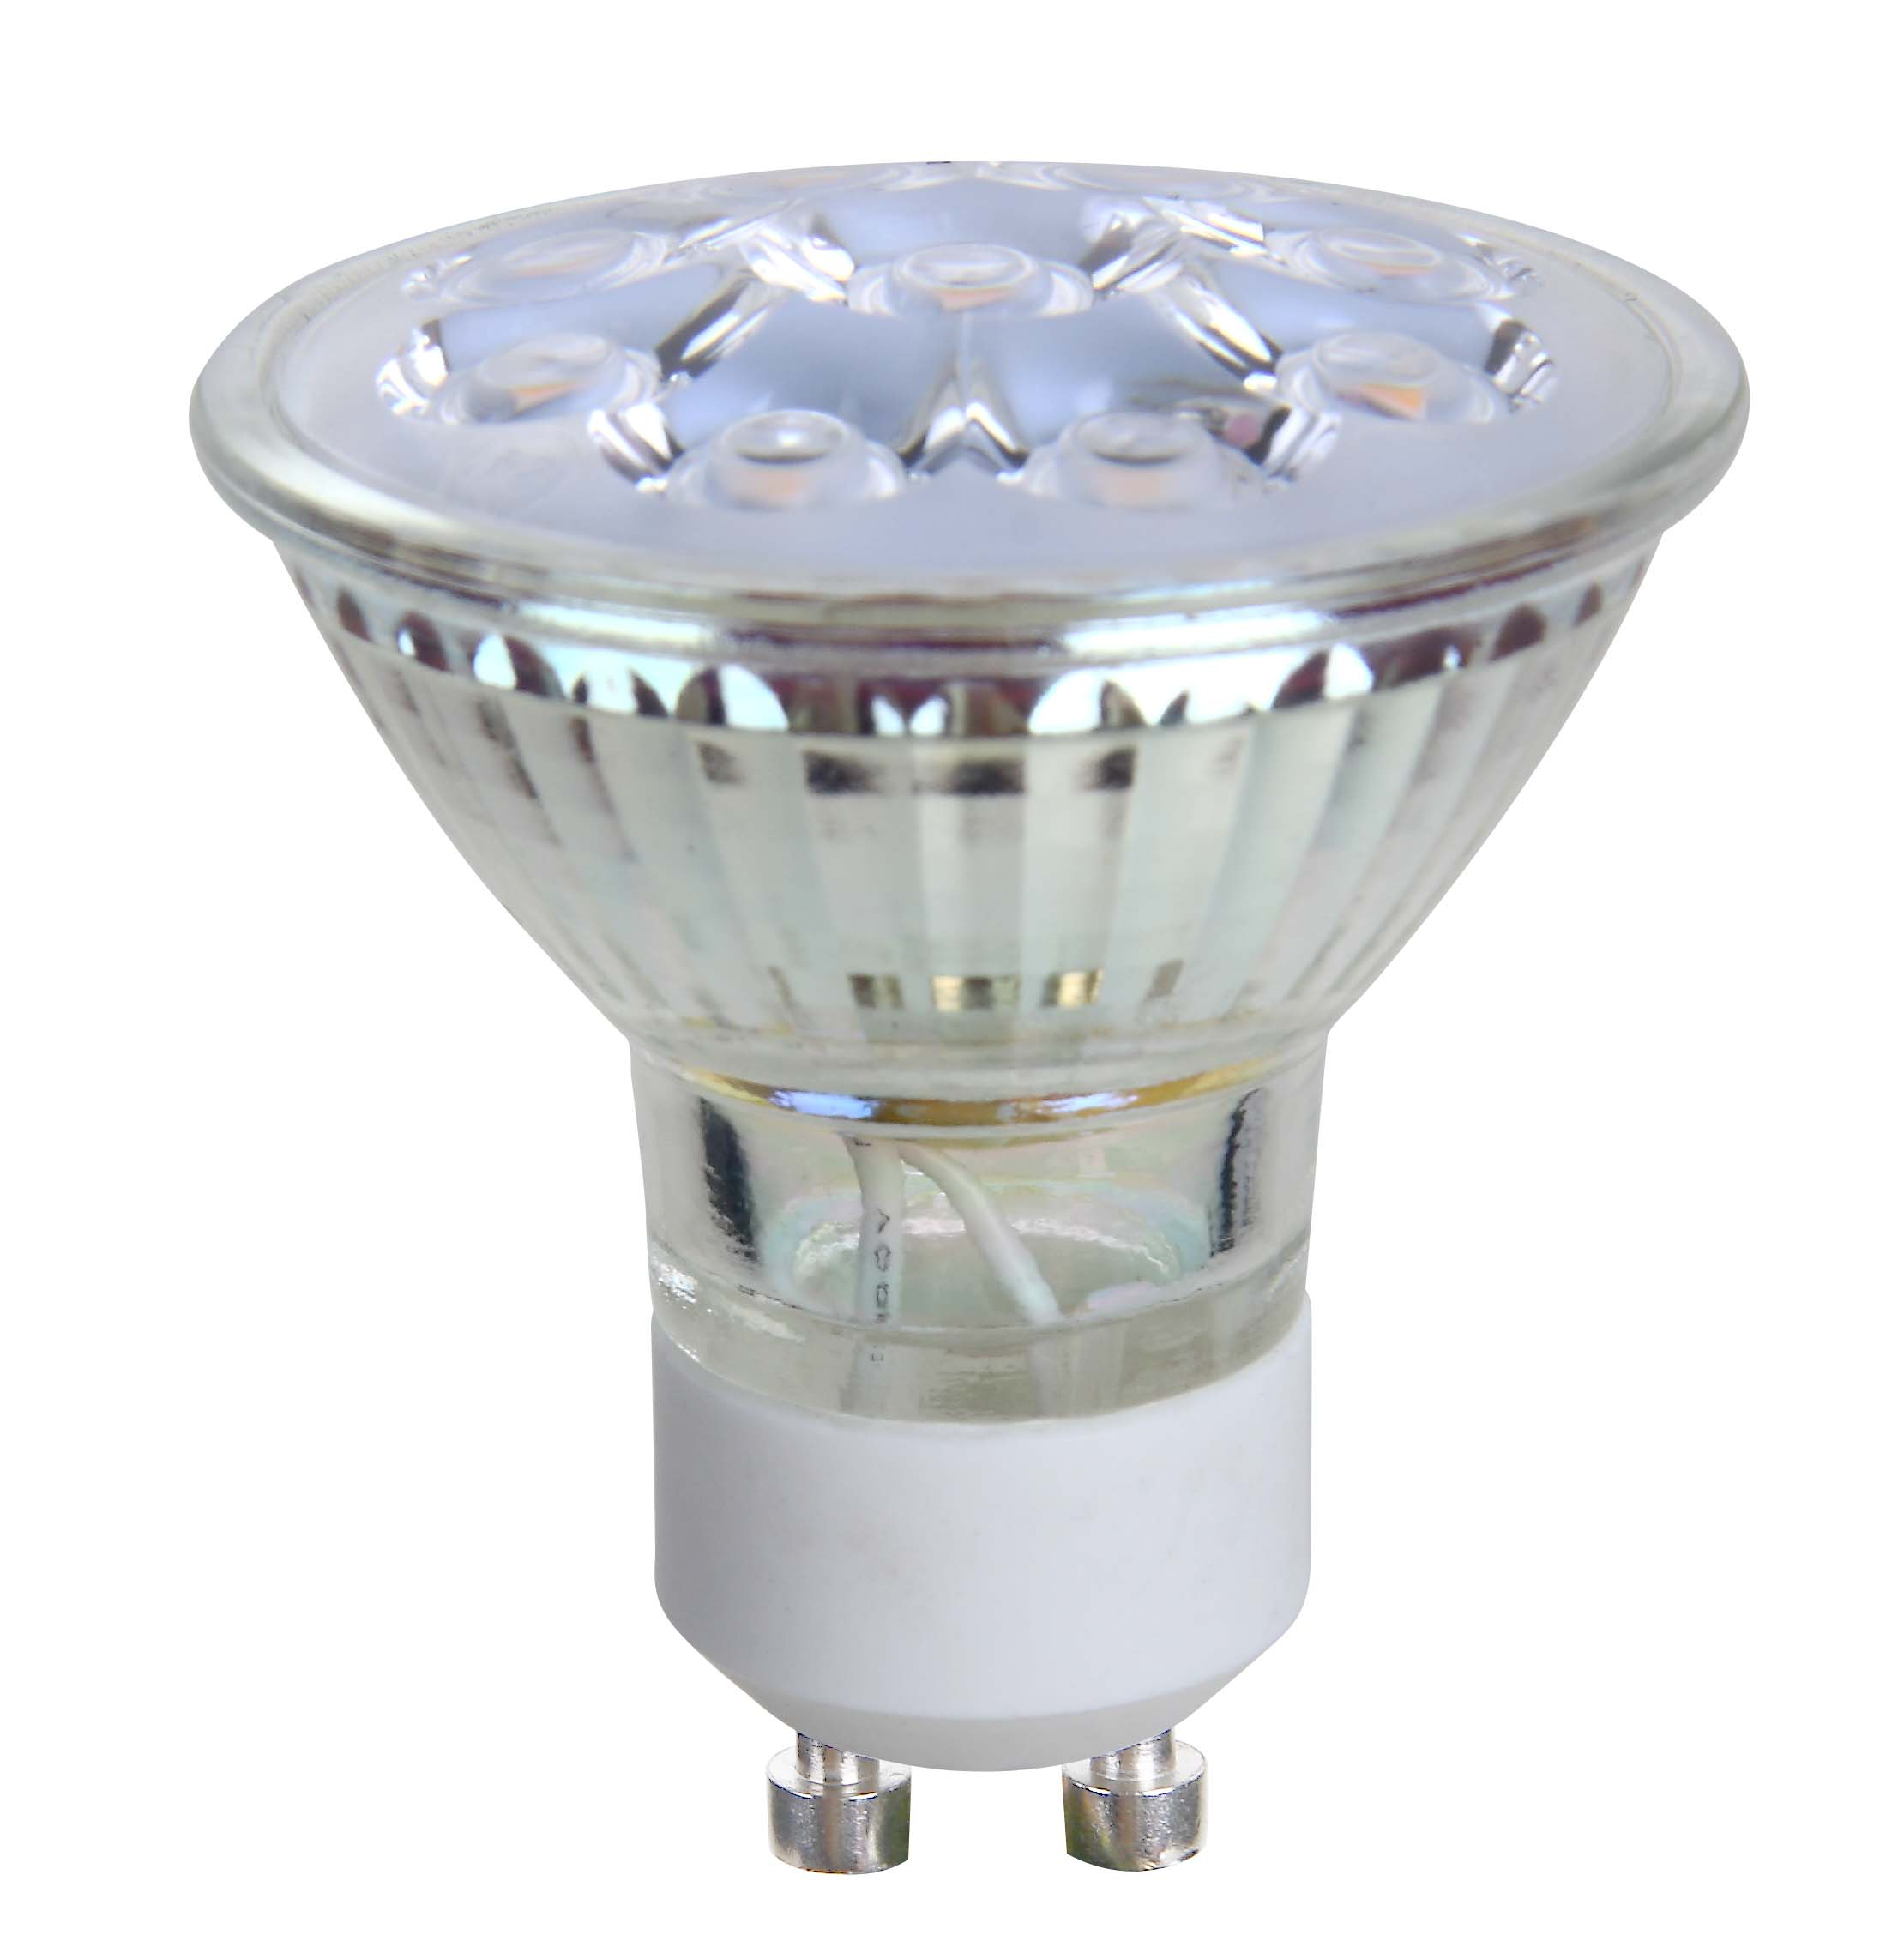 5w glass 38 and 60 degree beam angle GU10 Mr16 led spotlight